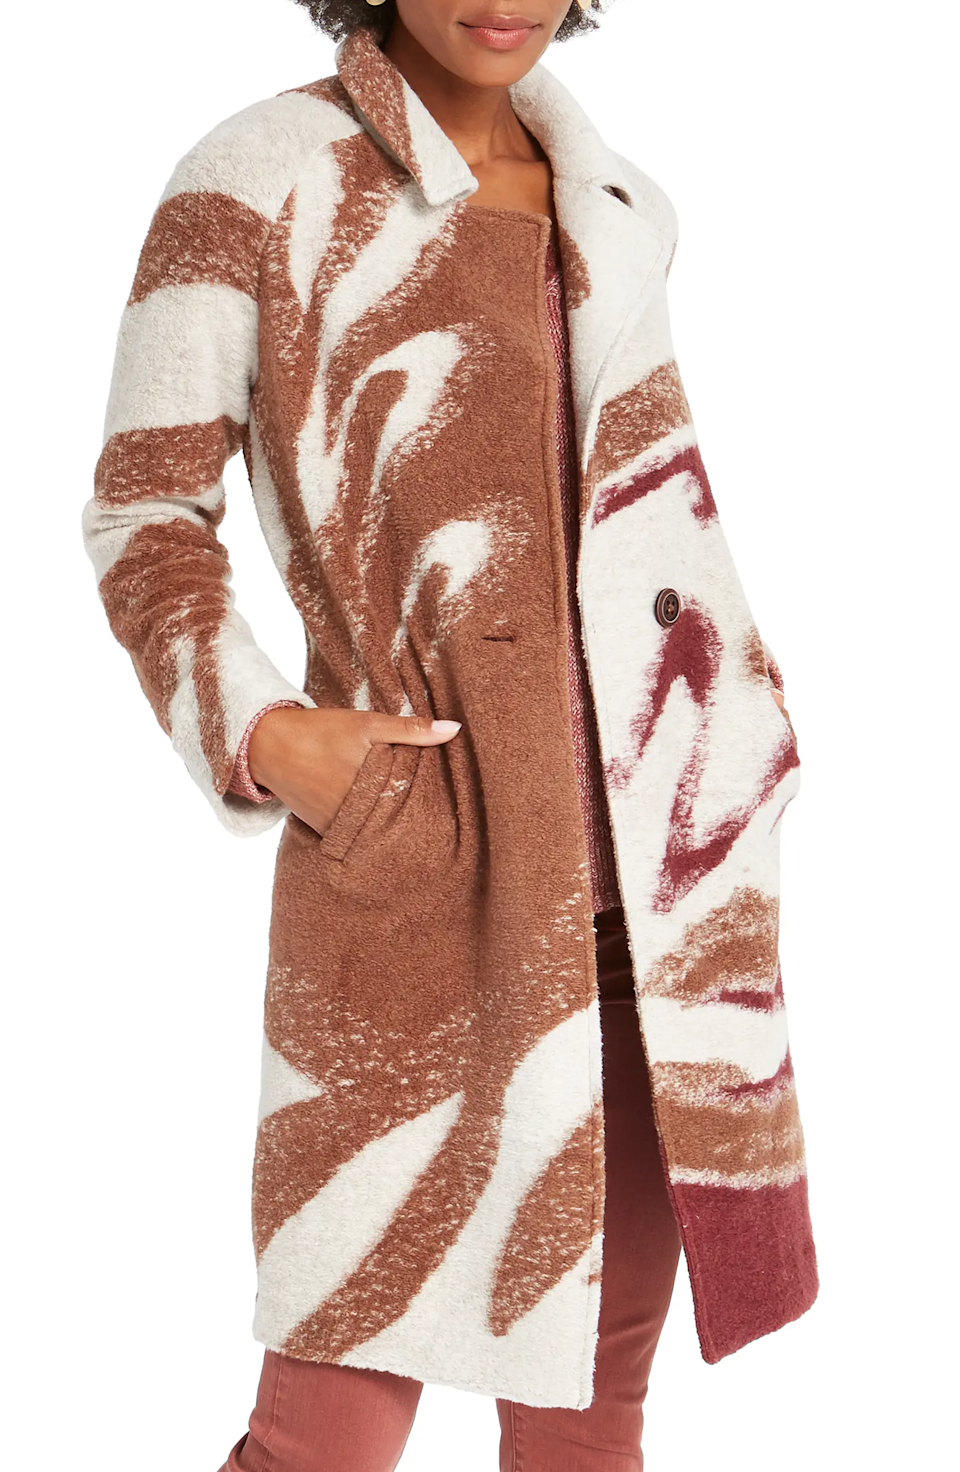 "<br><br><strong>NIC+ZOE</strong> Abstract Waves Sweater Coat, $, available at <a href=""https://go.skimresources.com/?id=30283X879131&url=https%3A%2F%2Fwww.nordstrom.com%2Fs%2Fniczoe-abstract-waves-sweater-coat%2F5708607"" rel=""nofollow noopener"" target=""_blank"" data-ylk=""slk:Nordstrom"" class=""link rapid-noclick-resp"">Nordstrom</a>"